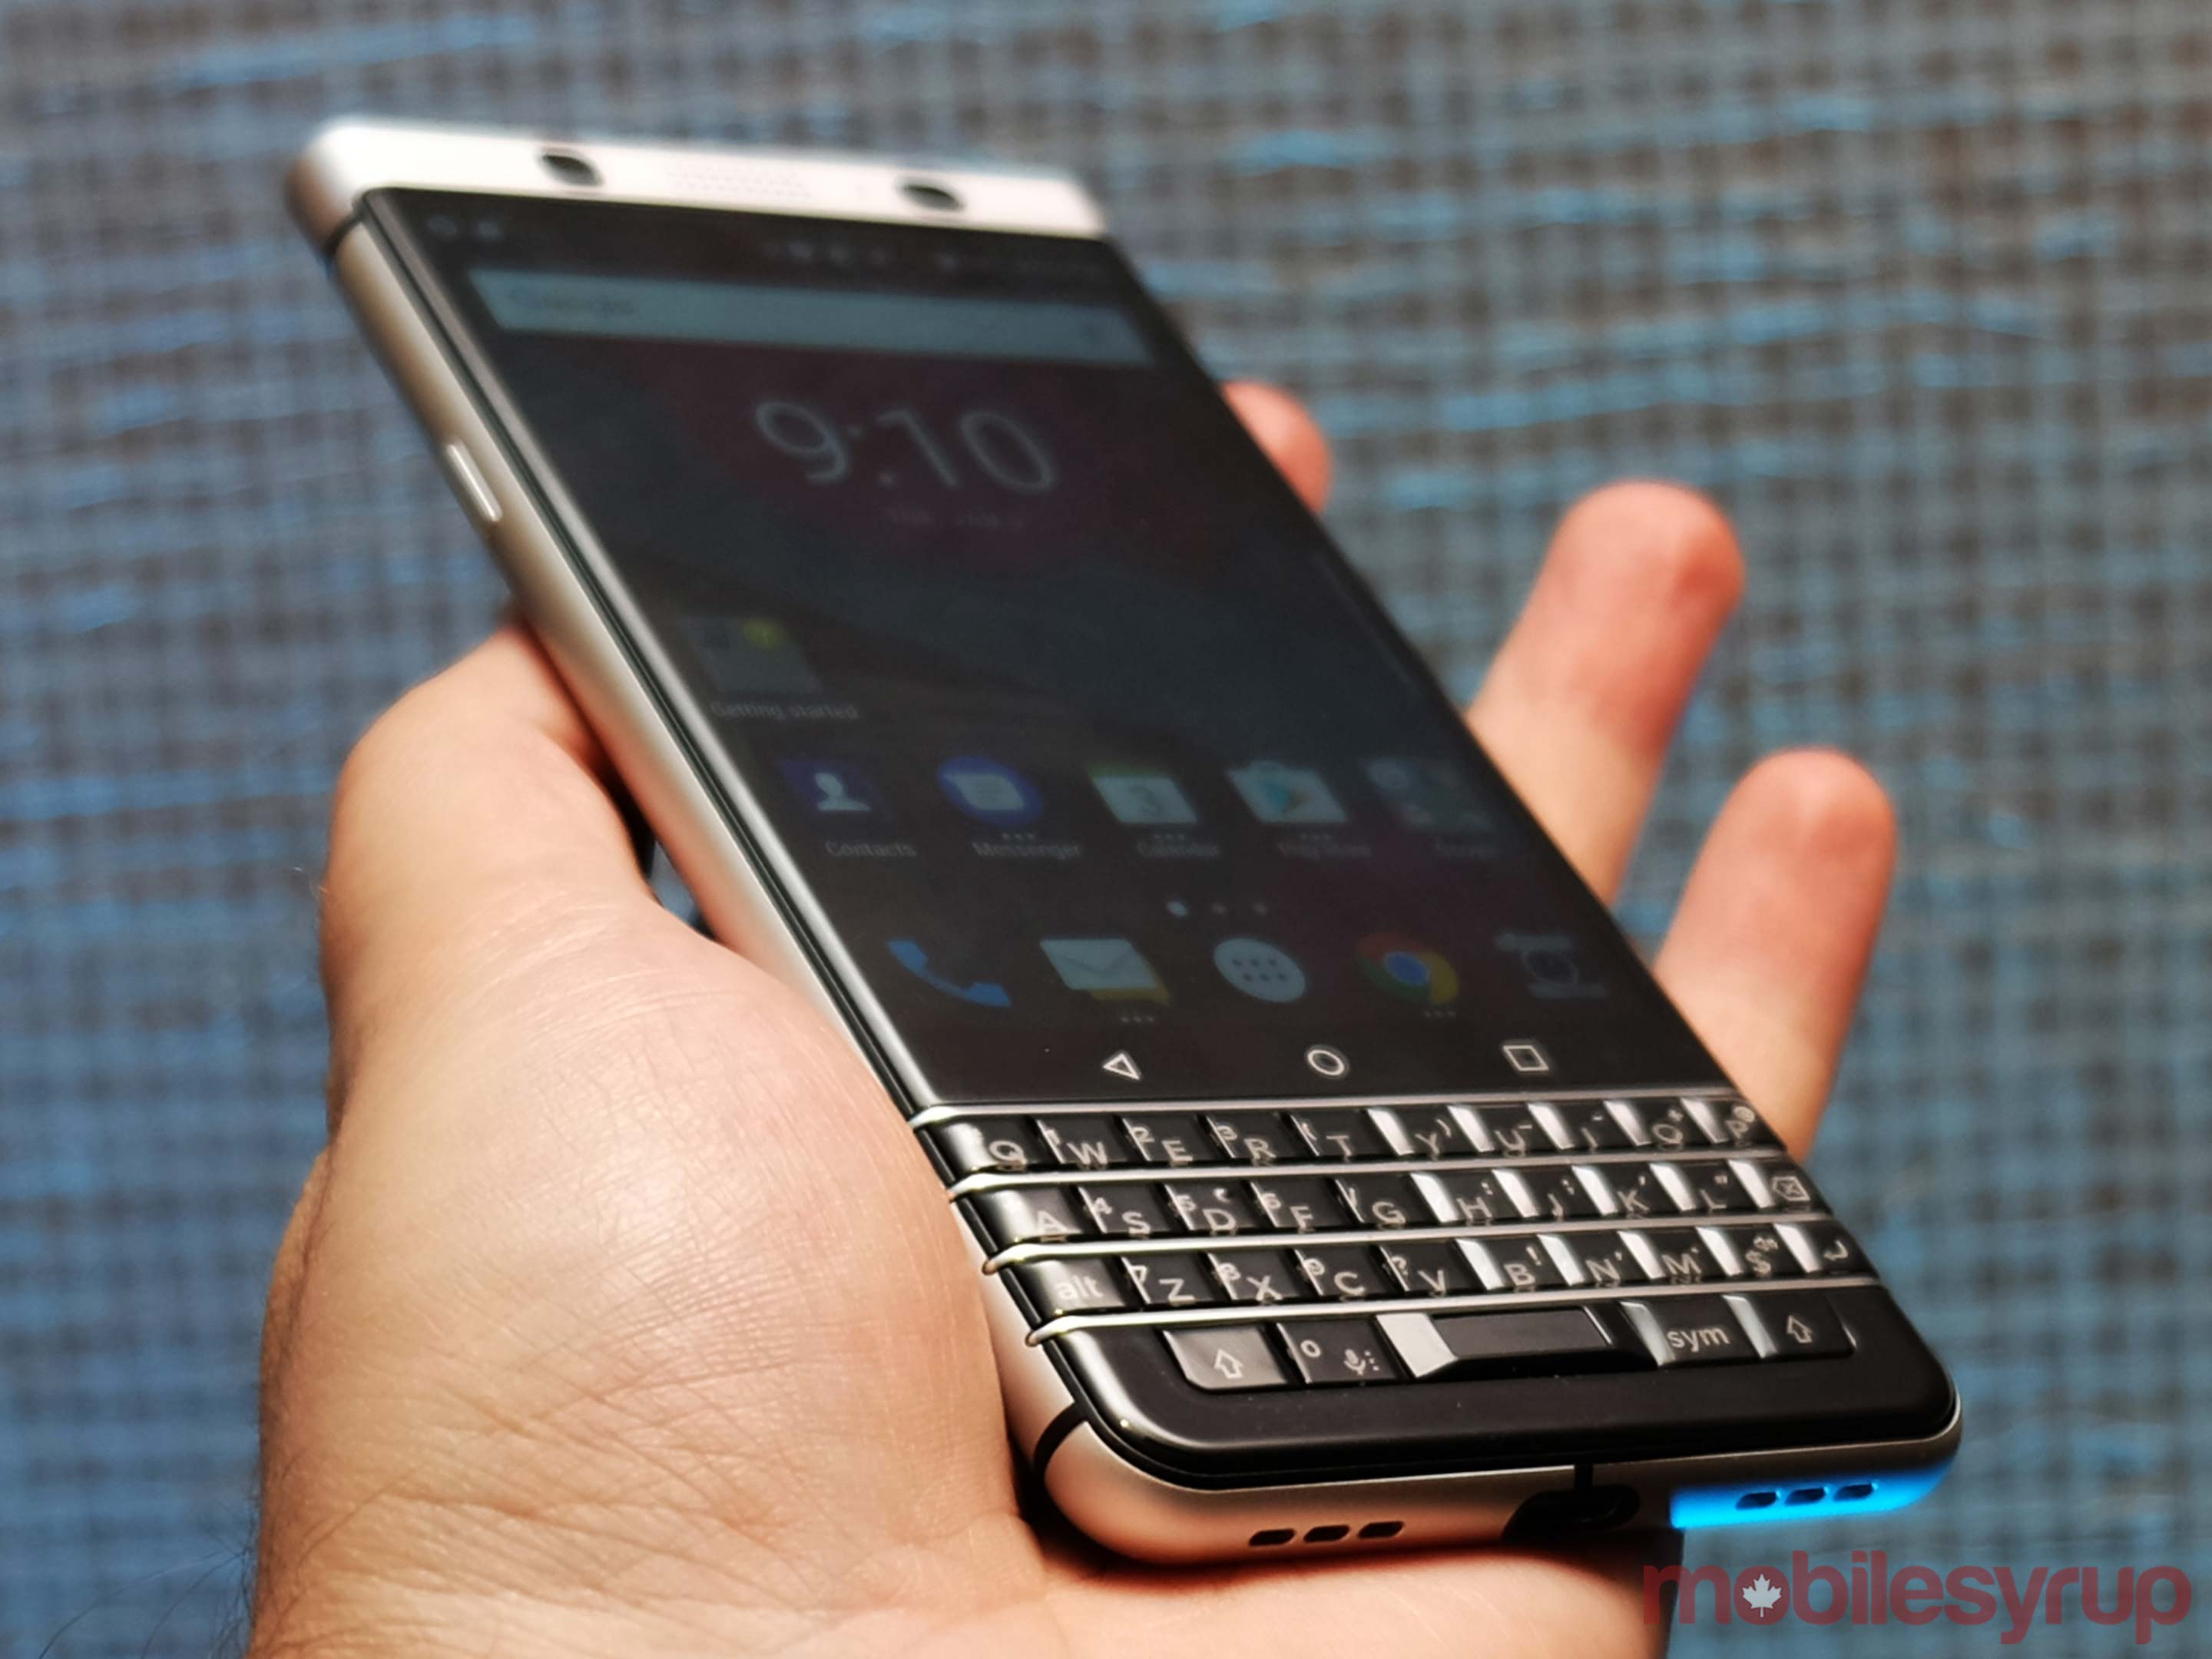 Poll: What are your thoughts on the design of the BlackBerry